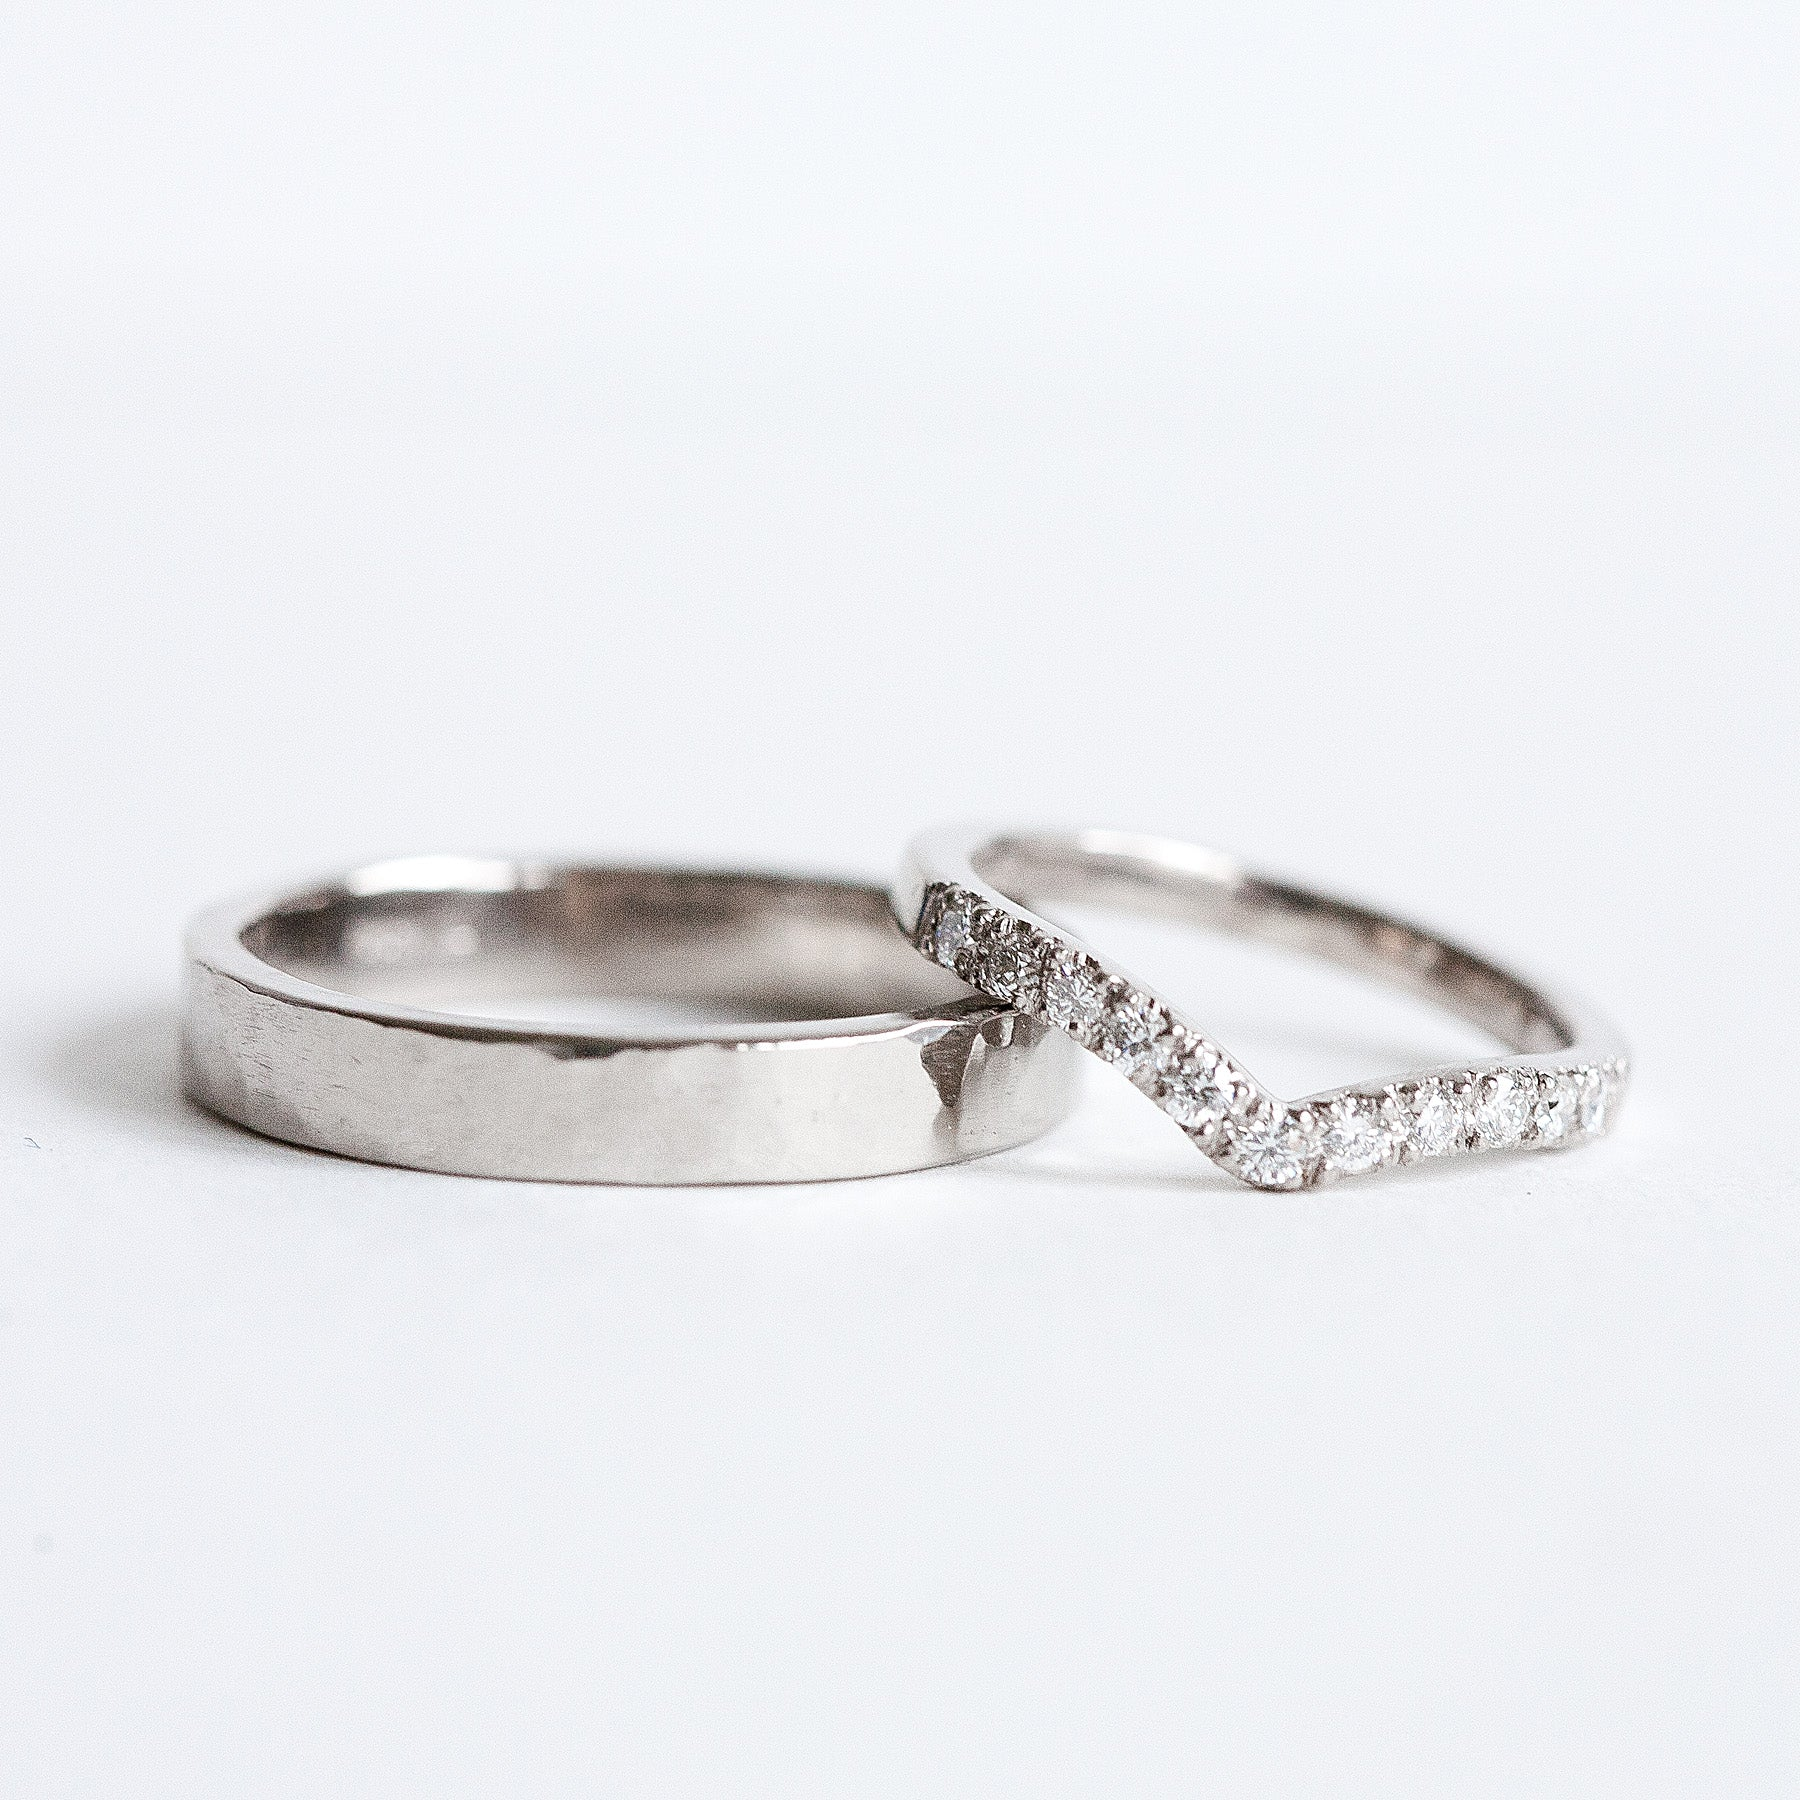 Fairtrade white gold and diamond wedding rings